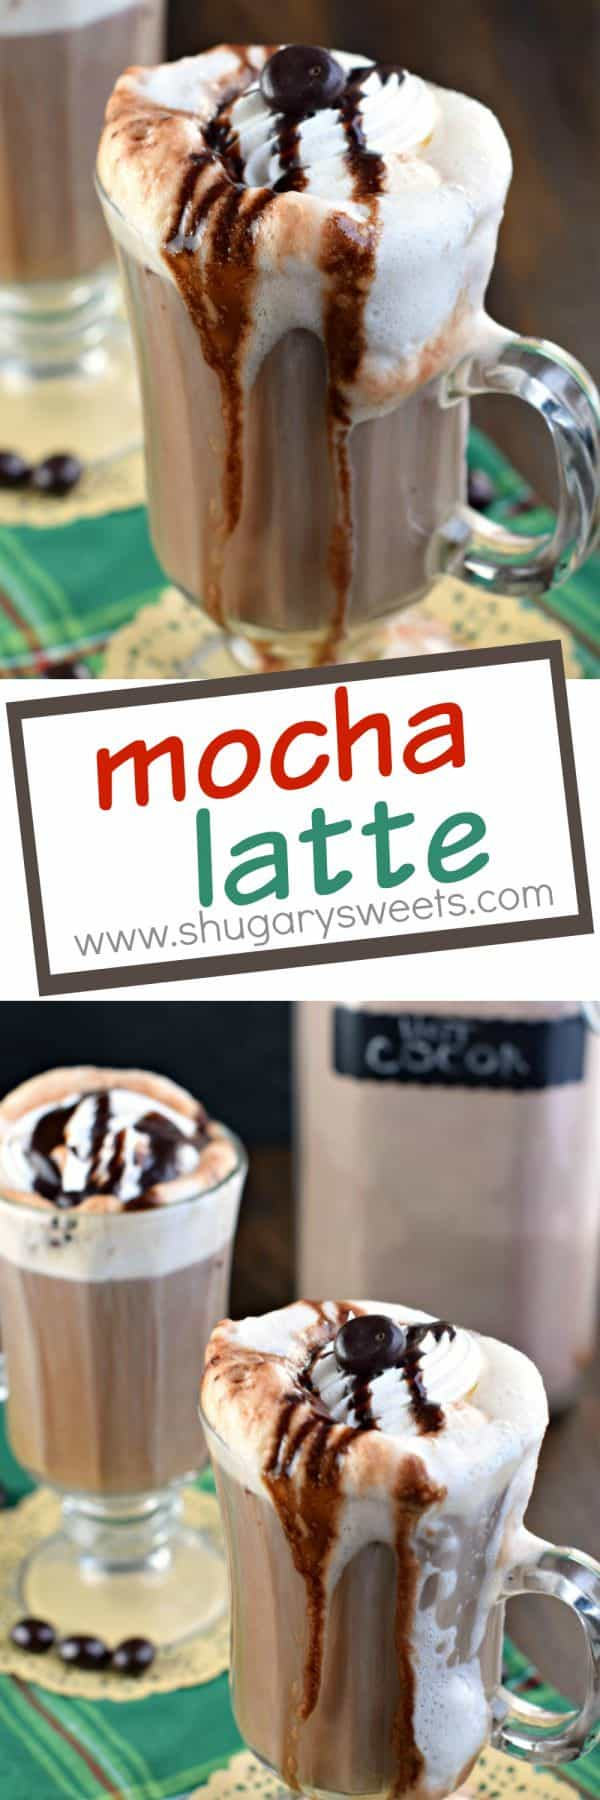 Do you love a hot, creamy Mocha Latte? Well, guess what? You can now make them at home, with no espresso machine needed!!!